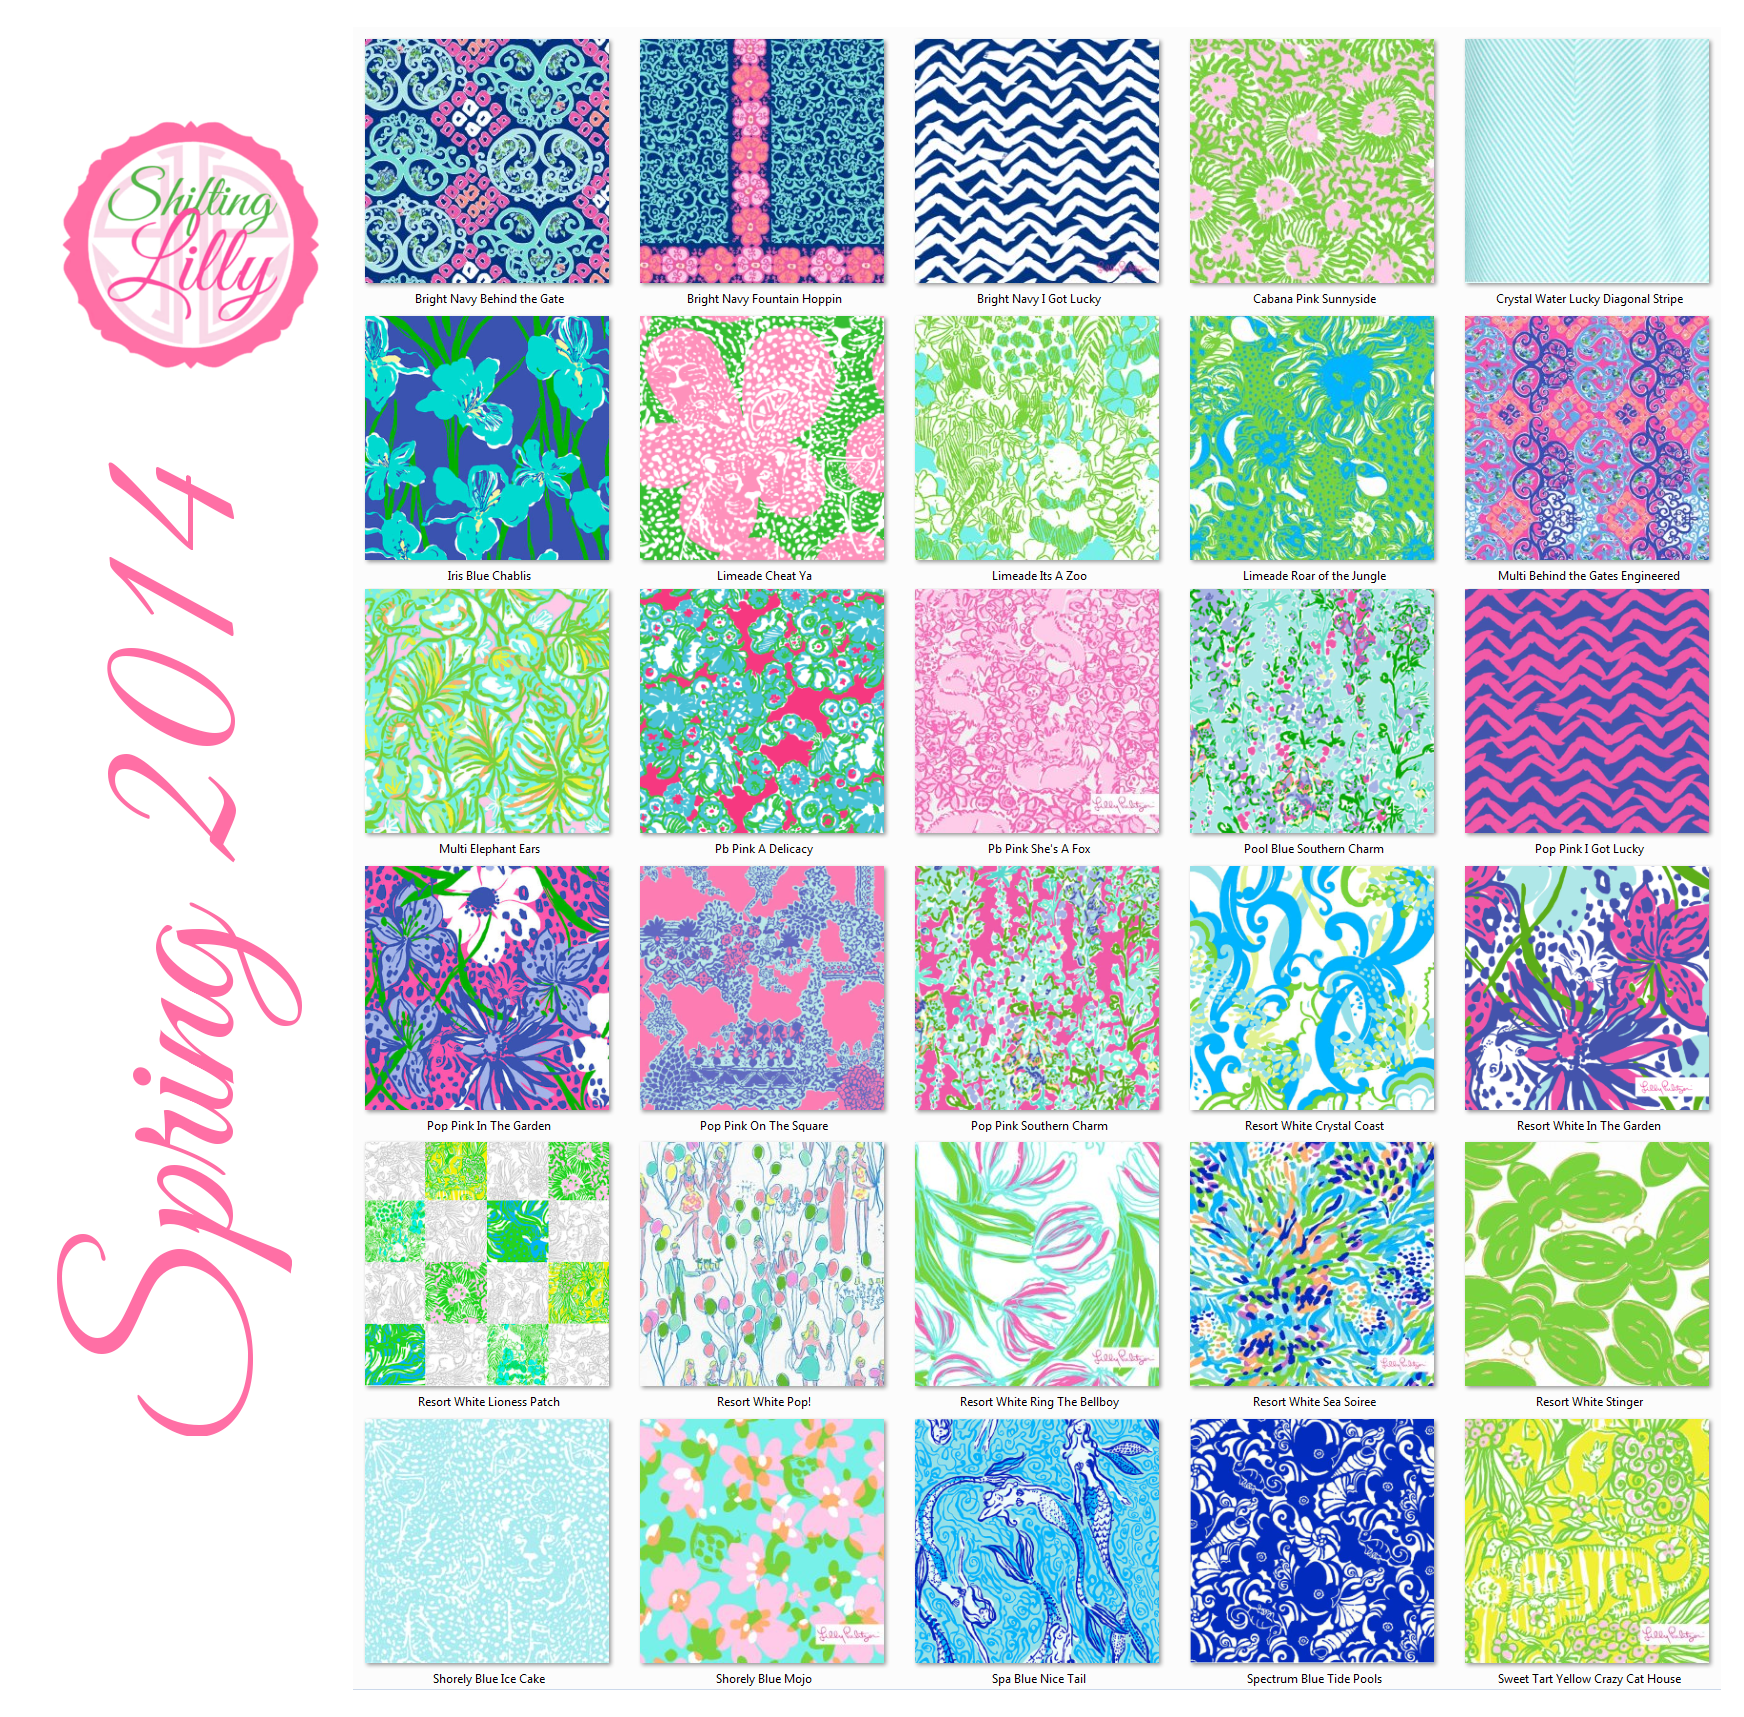 746e590362a734 Lilly Pulitzer Prints From Spring 2014 | Lilly Pulitzer Prints 2014 ...